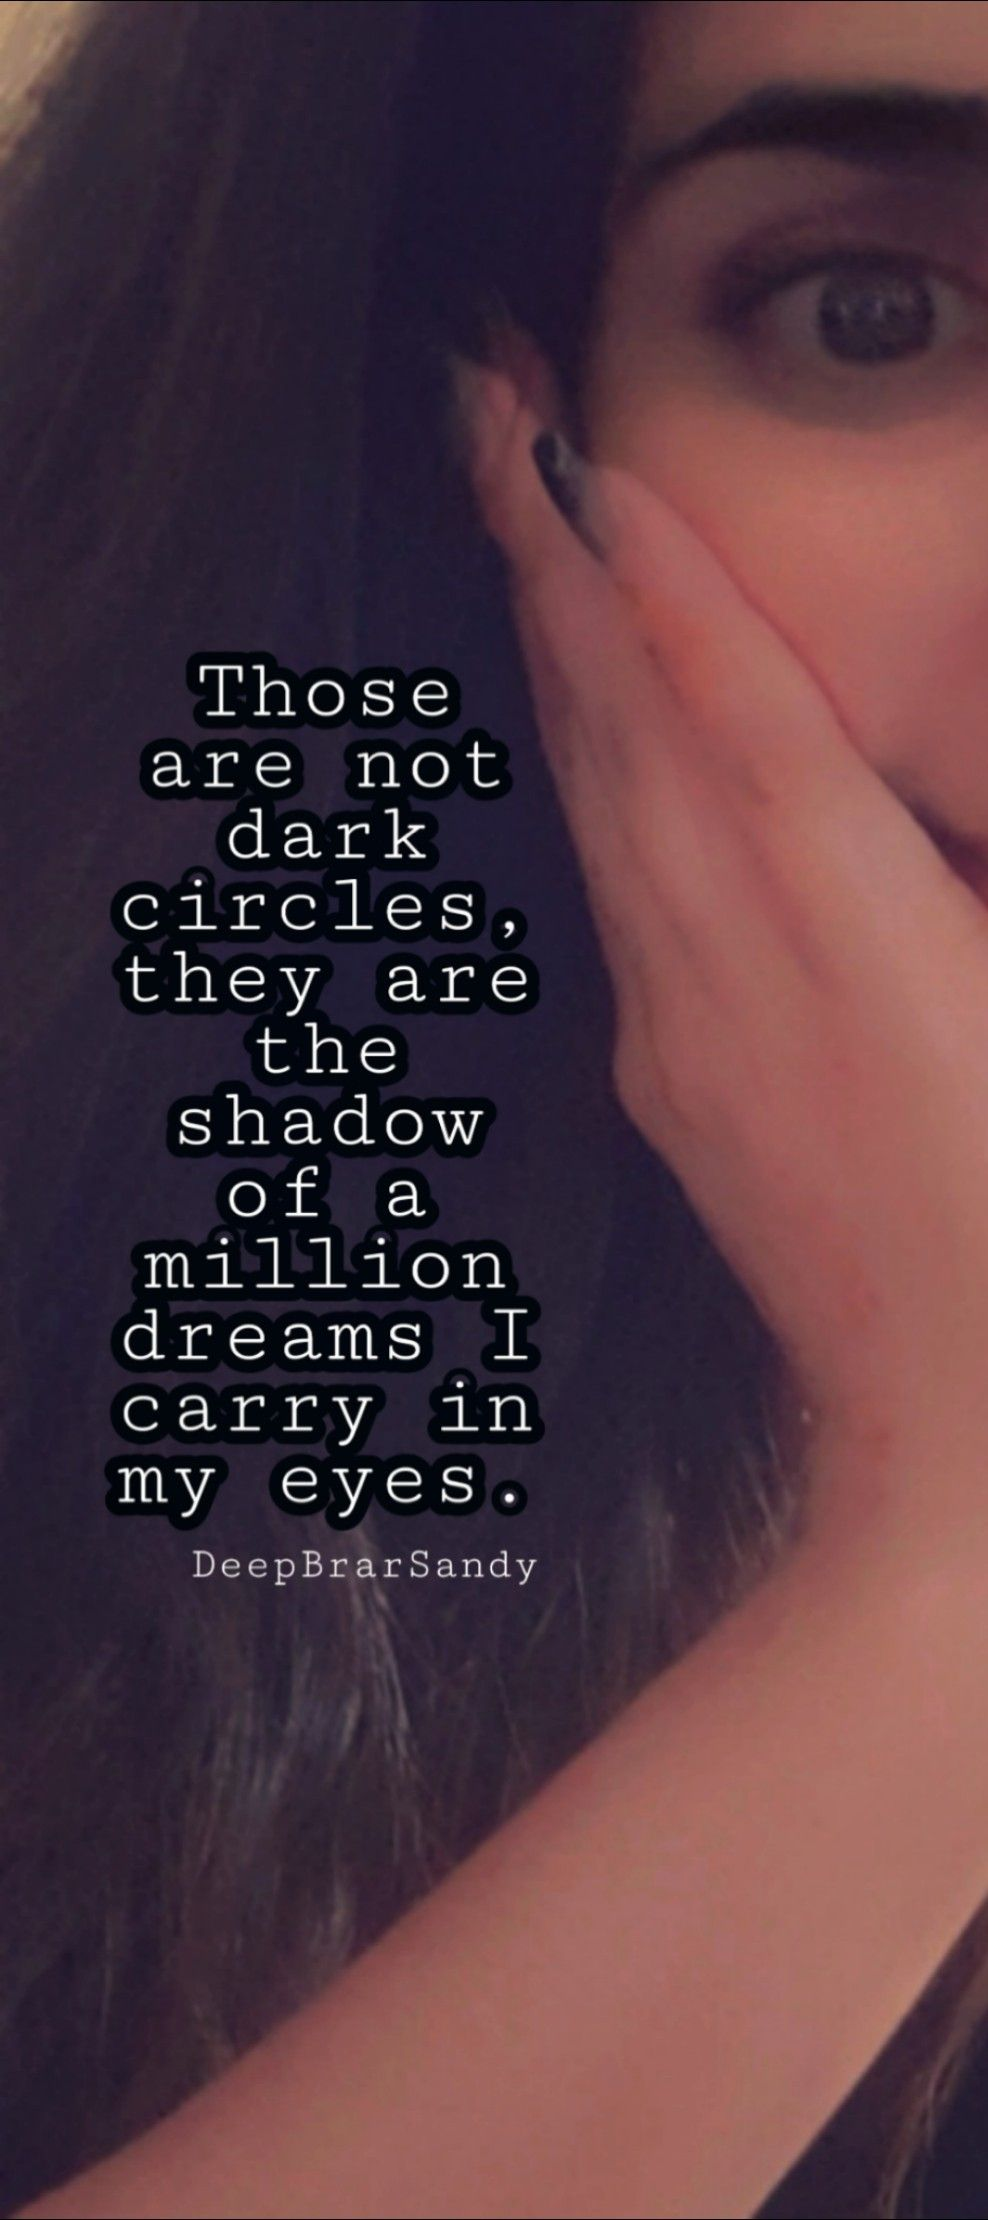 Those Are Not Dark Circles They Are The Shadow Of Million Dreams I Carry In My Eyes Quotes Inspir Reality Quotes Inspirtional Quotes Quotes About Photography